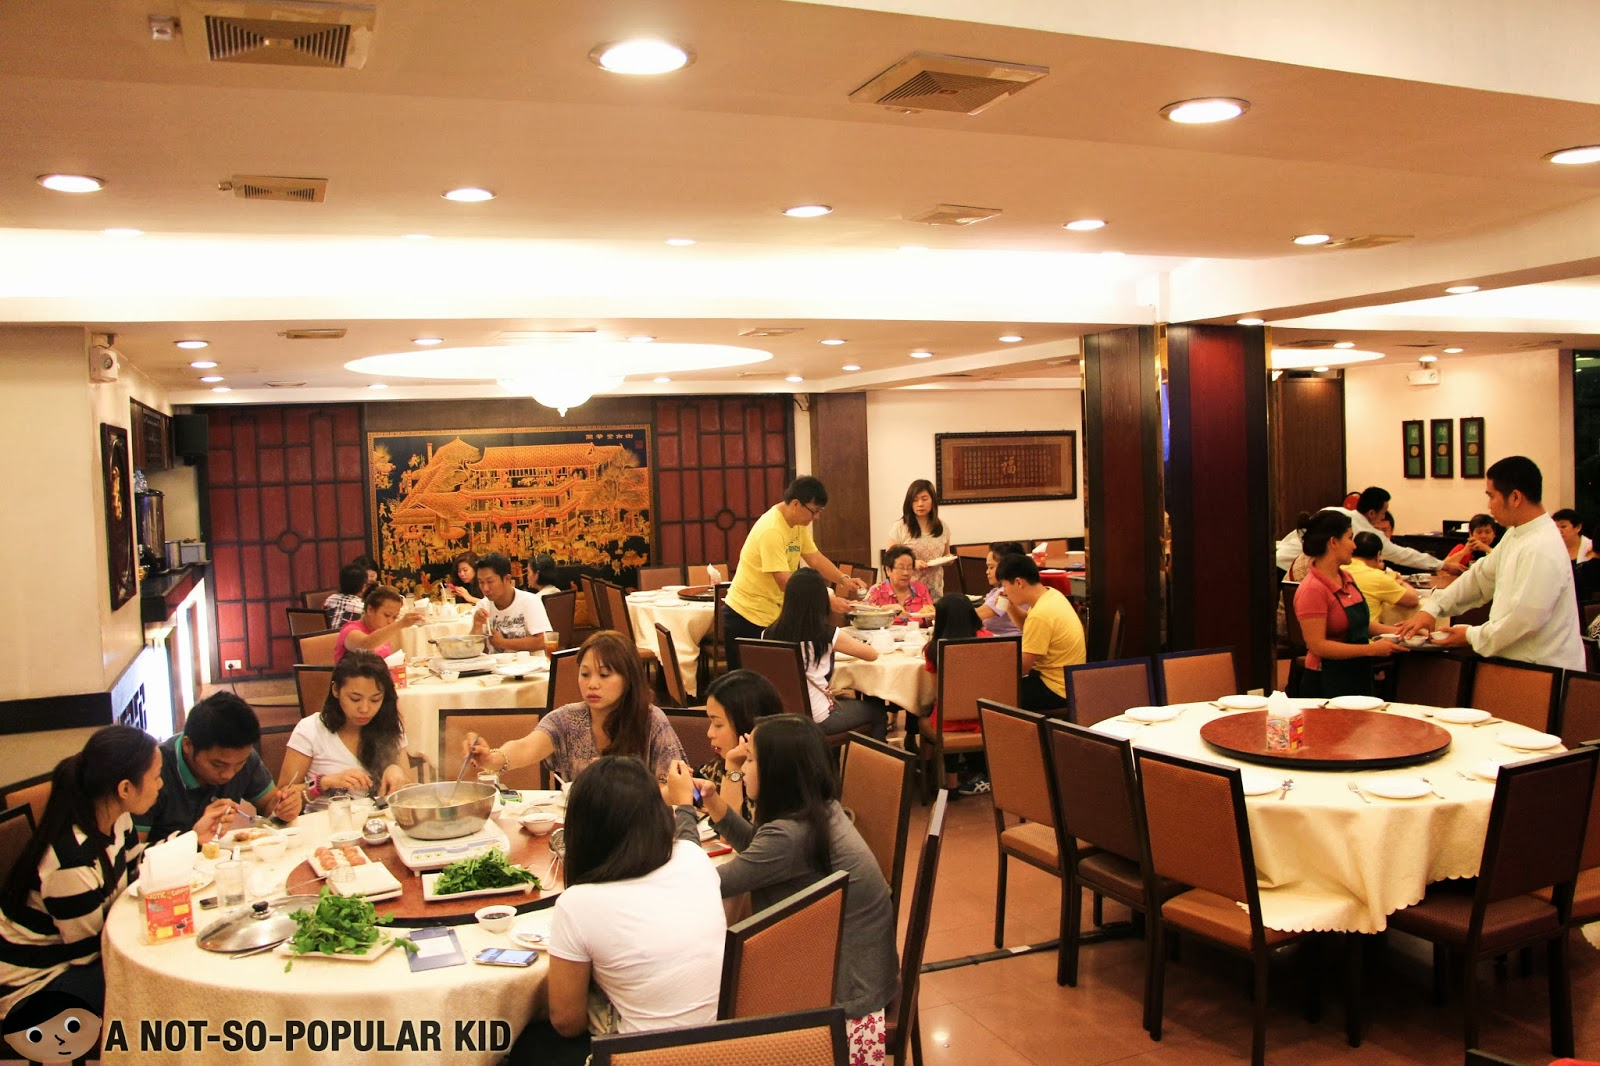 The Interior of Golden Fortune in Kalaw near U.N. Avenue LRT Station